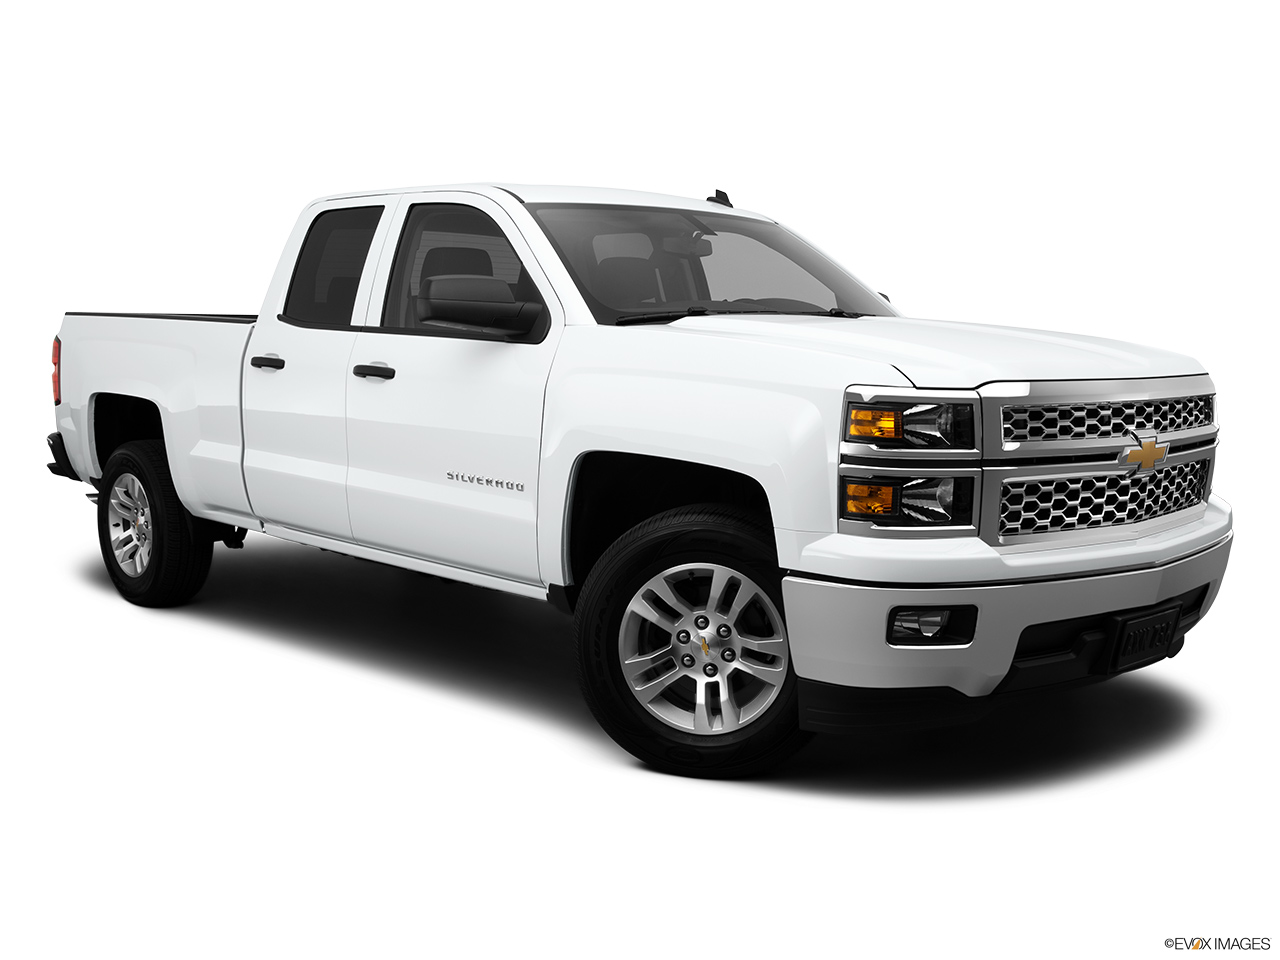 2014 chevrolet silverado 1500 2wd double cab 143 5 lt w 2lt. Black Bedroom Furniture Sets. Home Design Ideas